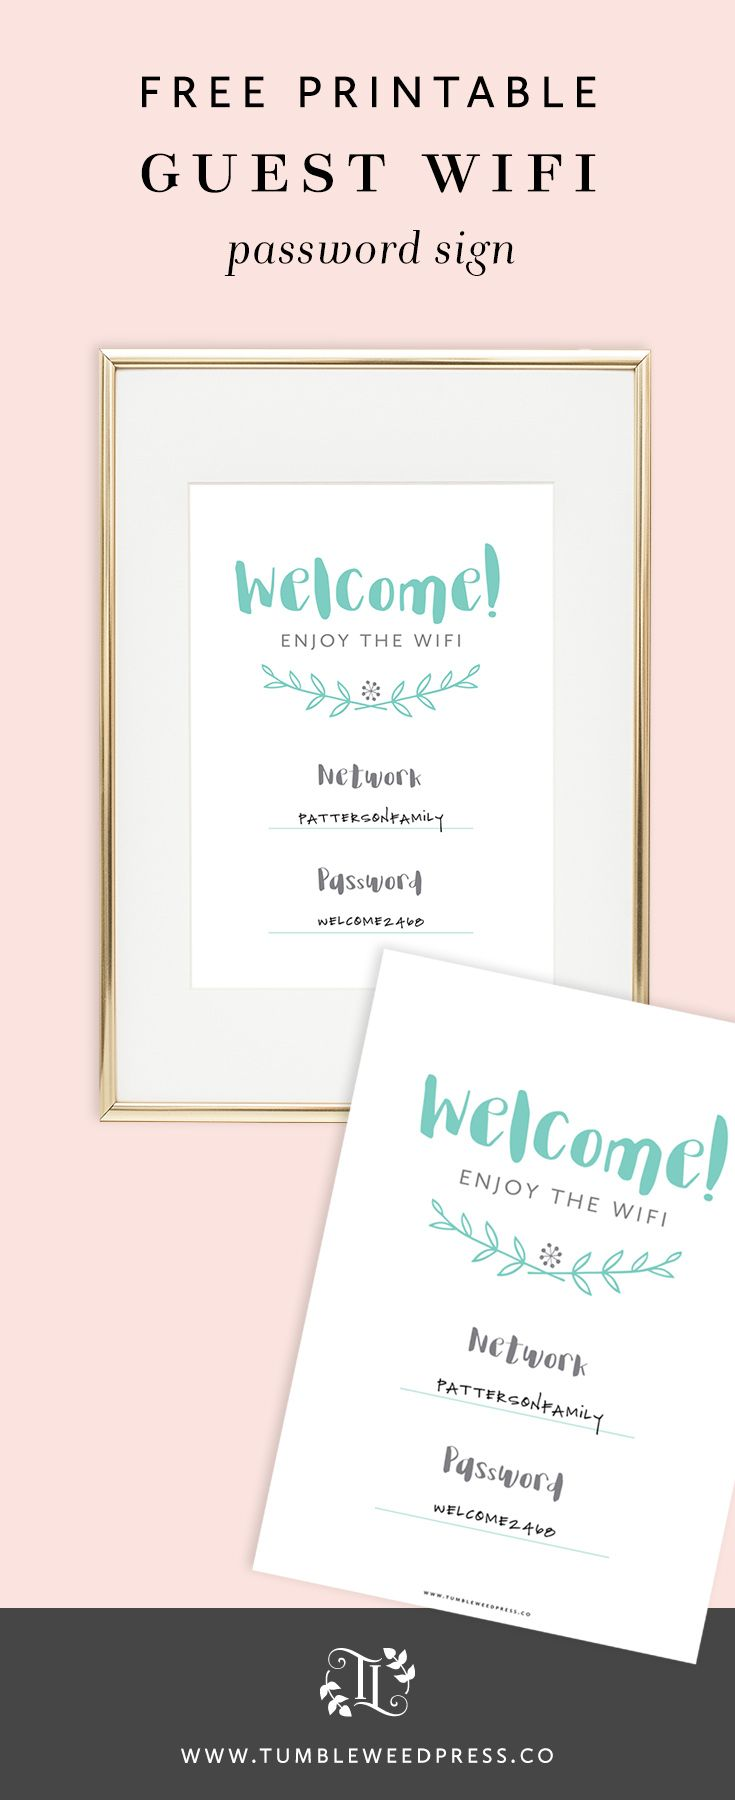 Free Printable Guest Wifi Password Sign by TumbleweedPress.Co